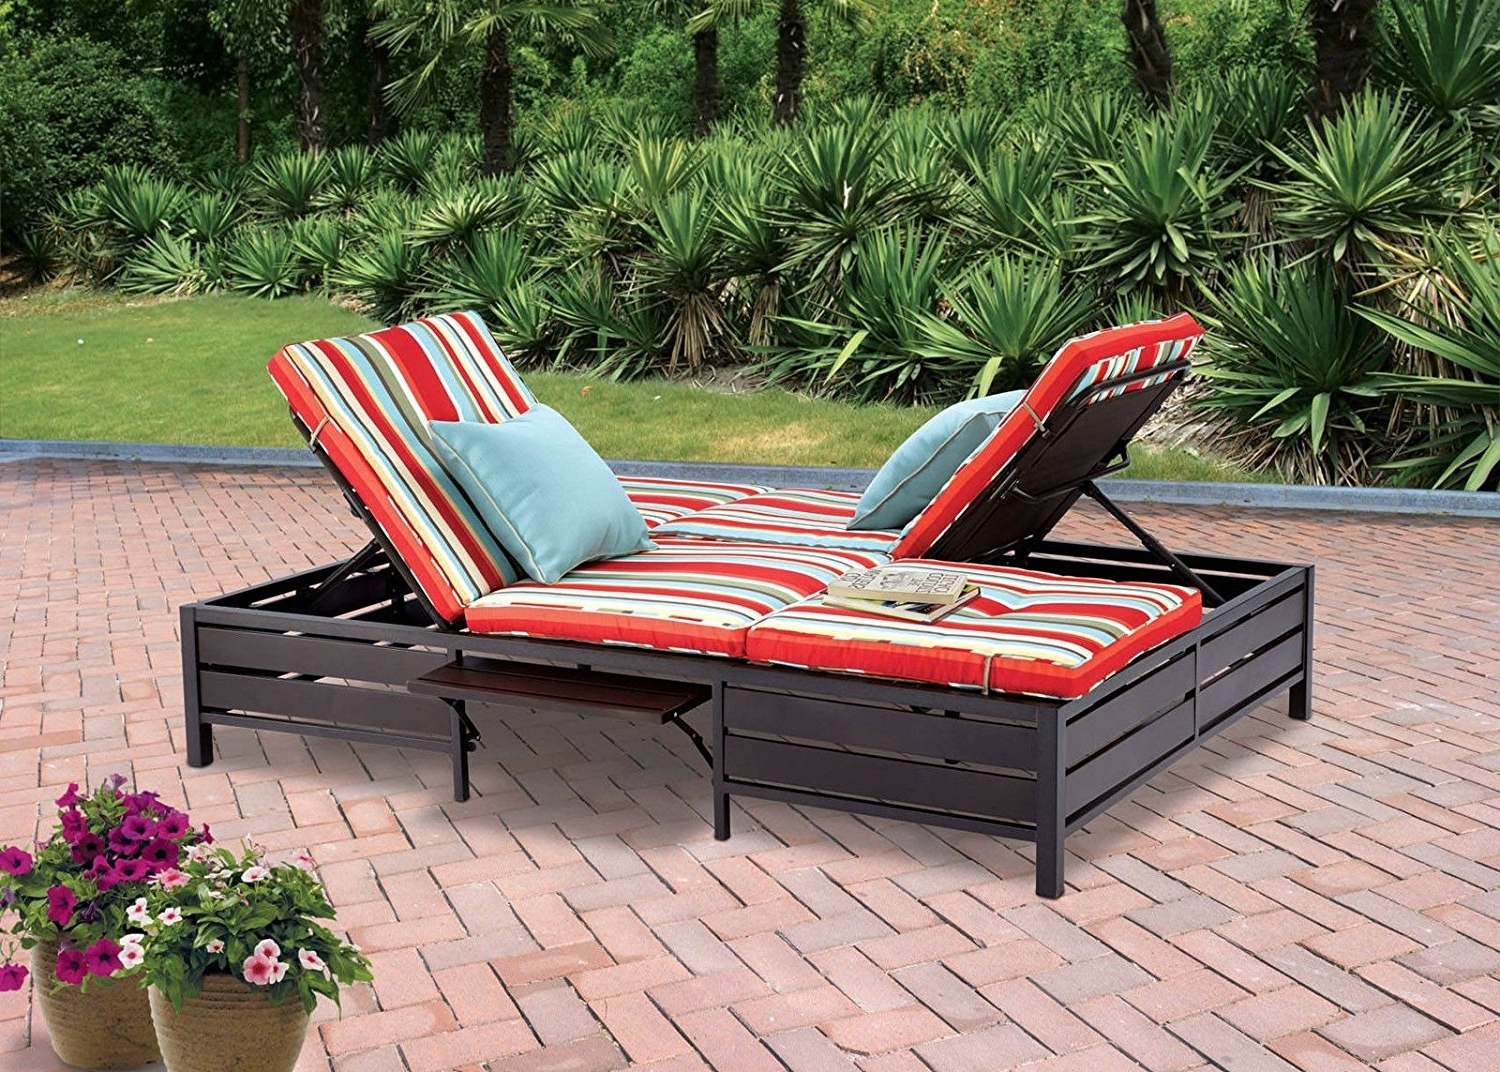 Double Chaise Lounges For Outdoor Throughout Most Up To Date Amazon : Double Chaise Lounger – This Red Stripe Outdoor (View 7 of 15)